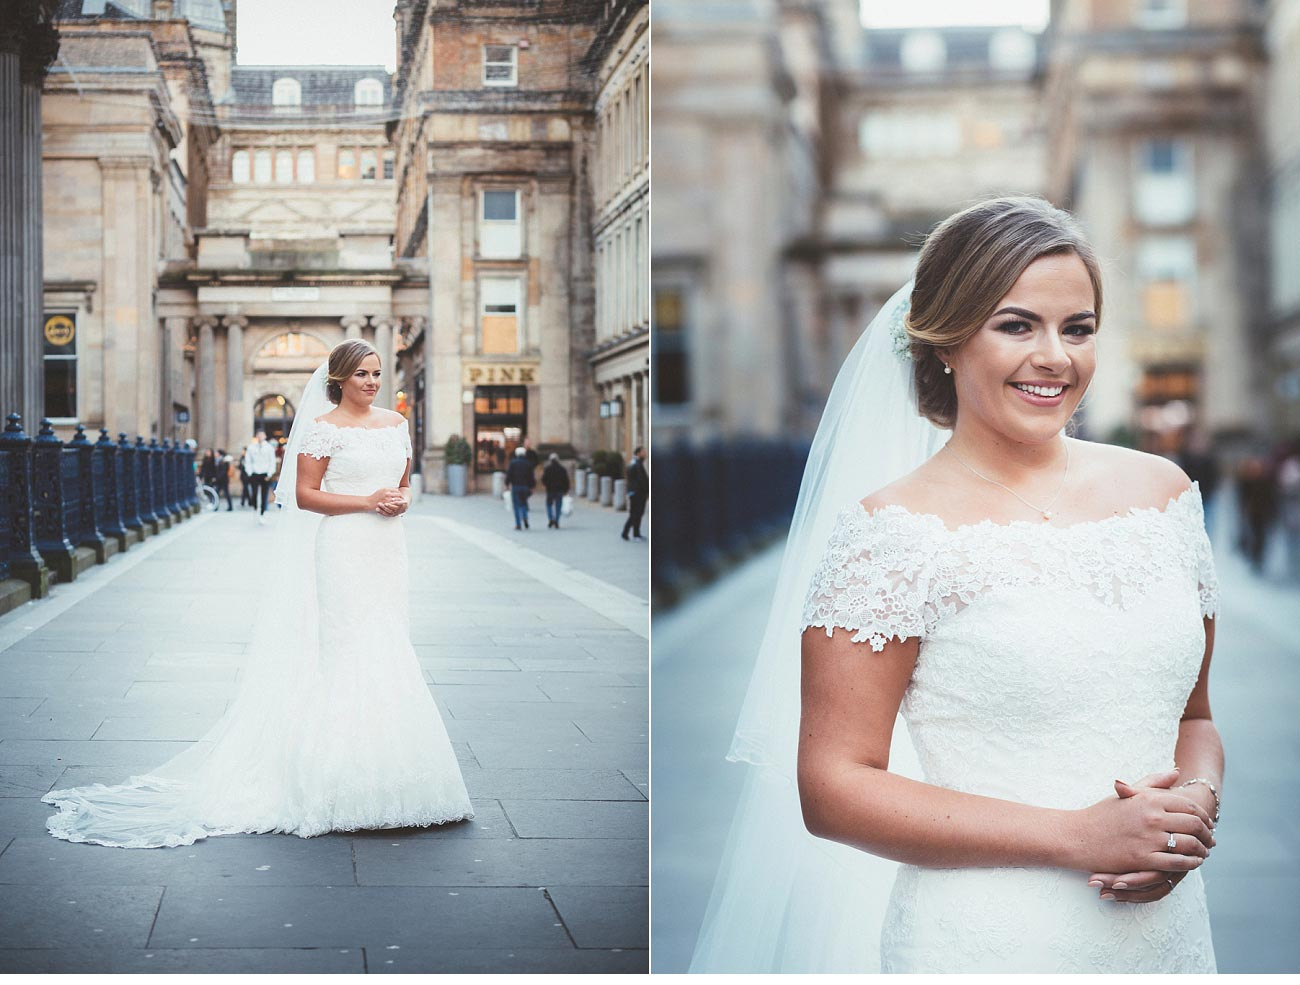 wedding photographer glasgow 29 Royal Exchange square 0044